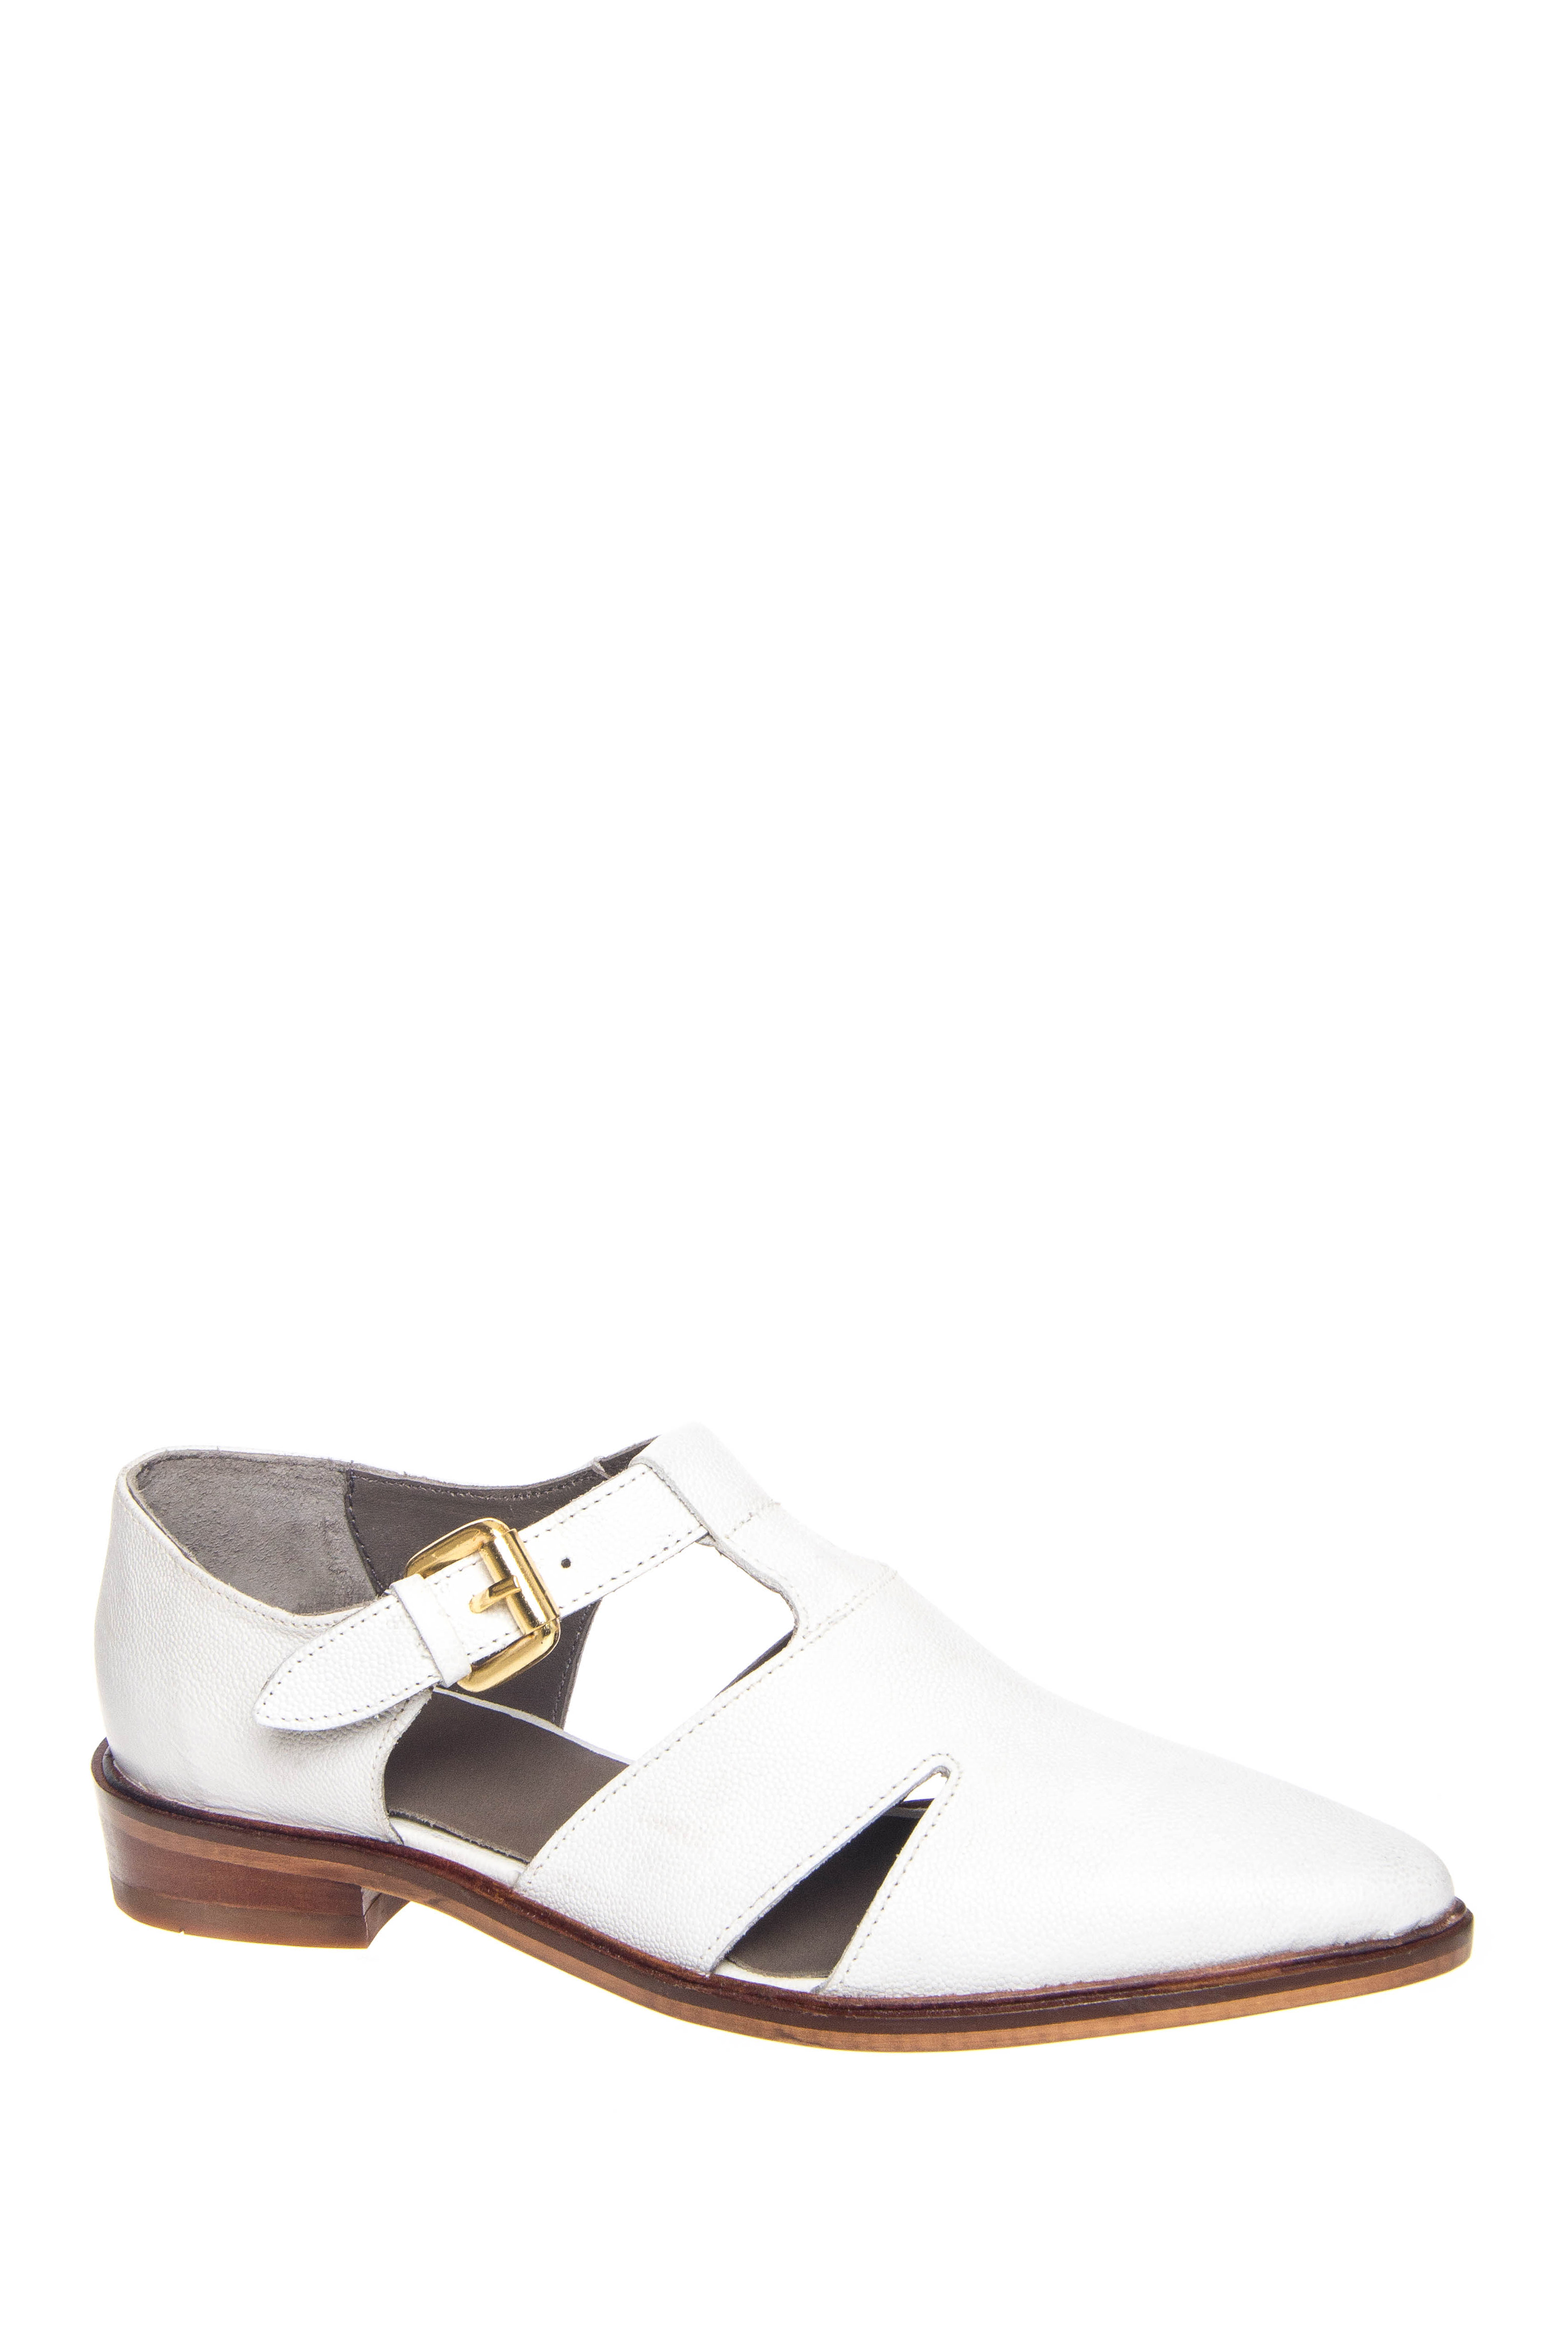 H By Hudson Liv Pointed Toe Oxford - White